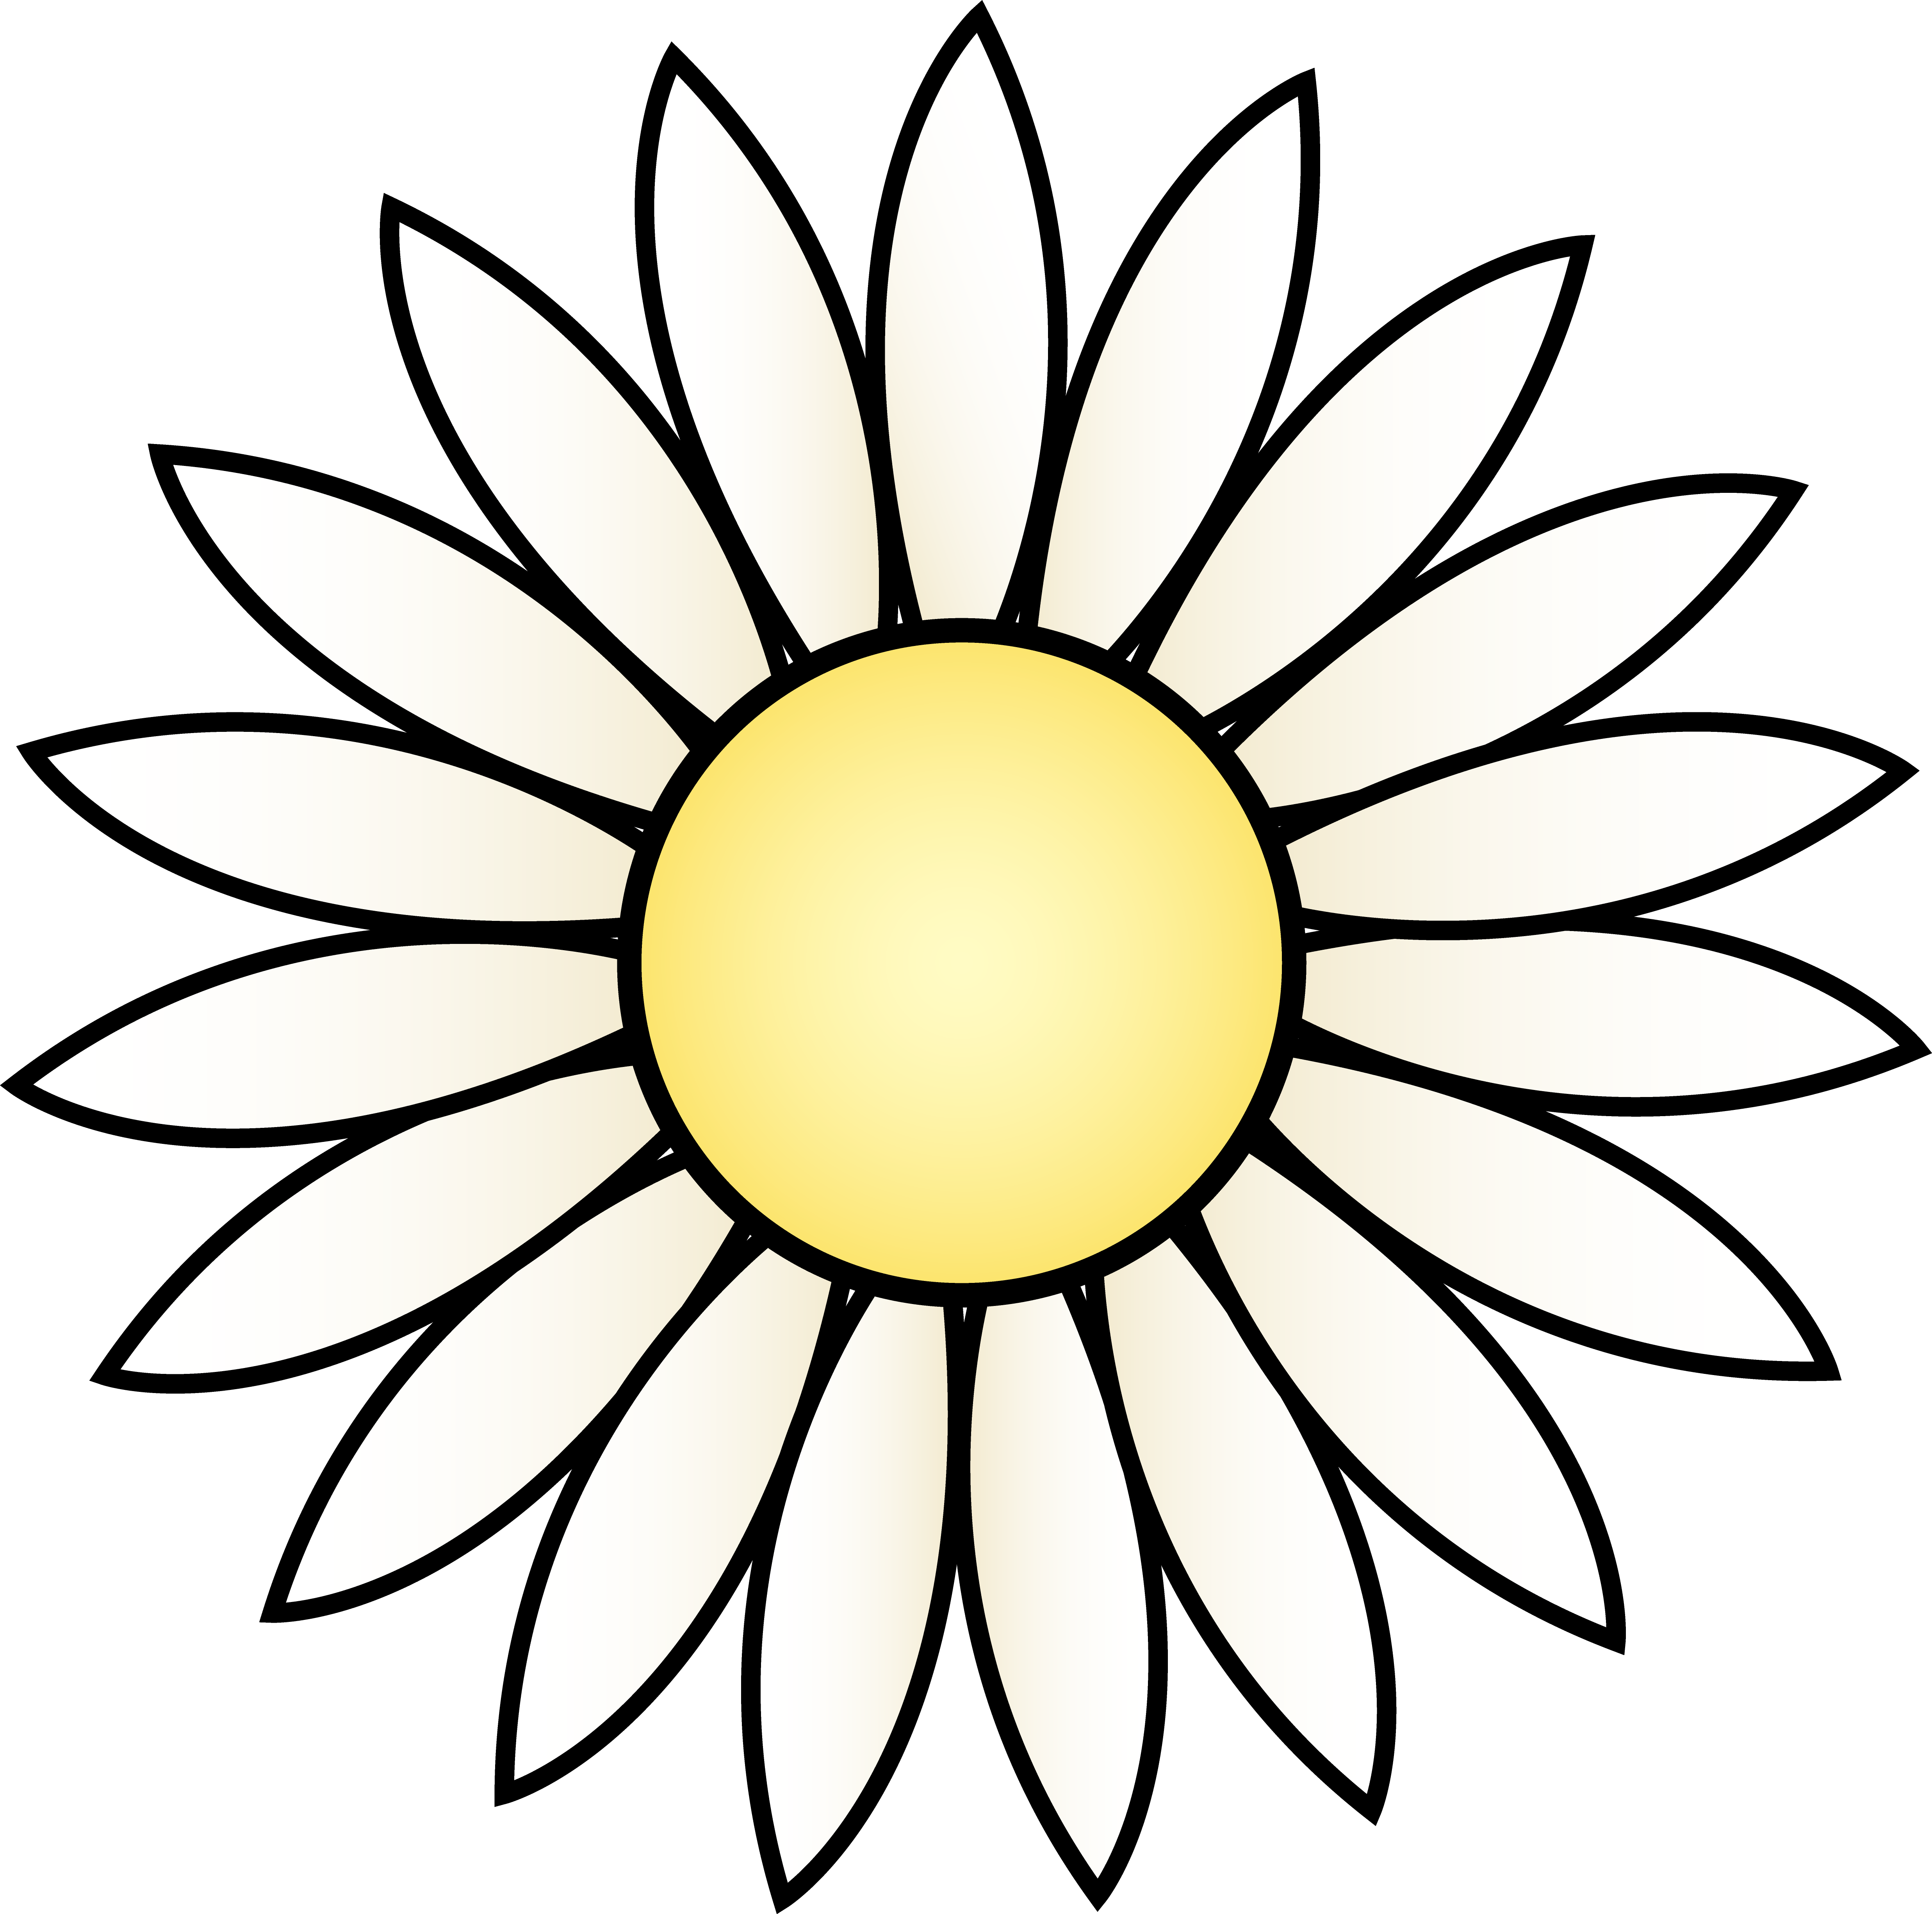 White daisy flower free. Daisies clipart scene clip free library